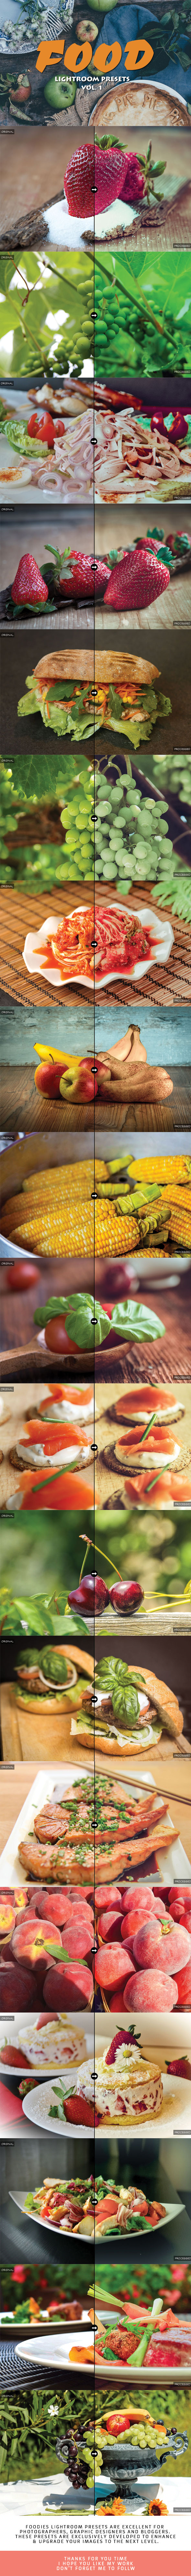 20 Food Lightroom Presets Ver. 1 - Lightroom Presets Add-ons